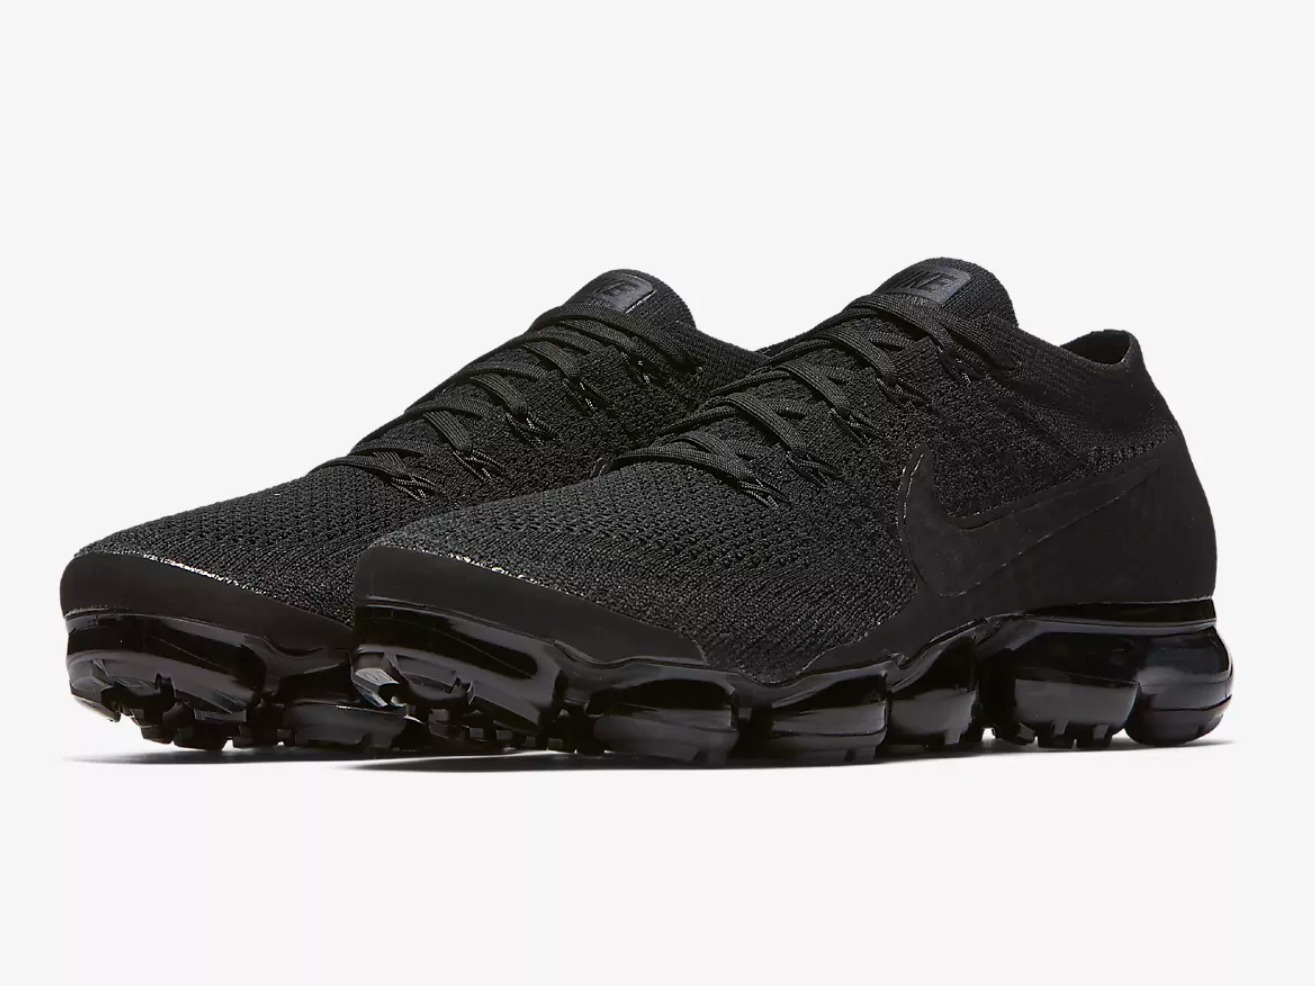 NIKE AIR VAPORMAX FLYKNIT Black Men's Running Shoe ナイキ